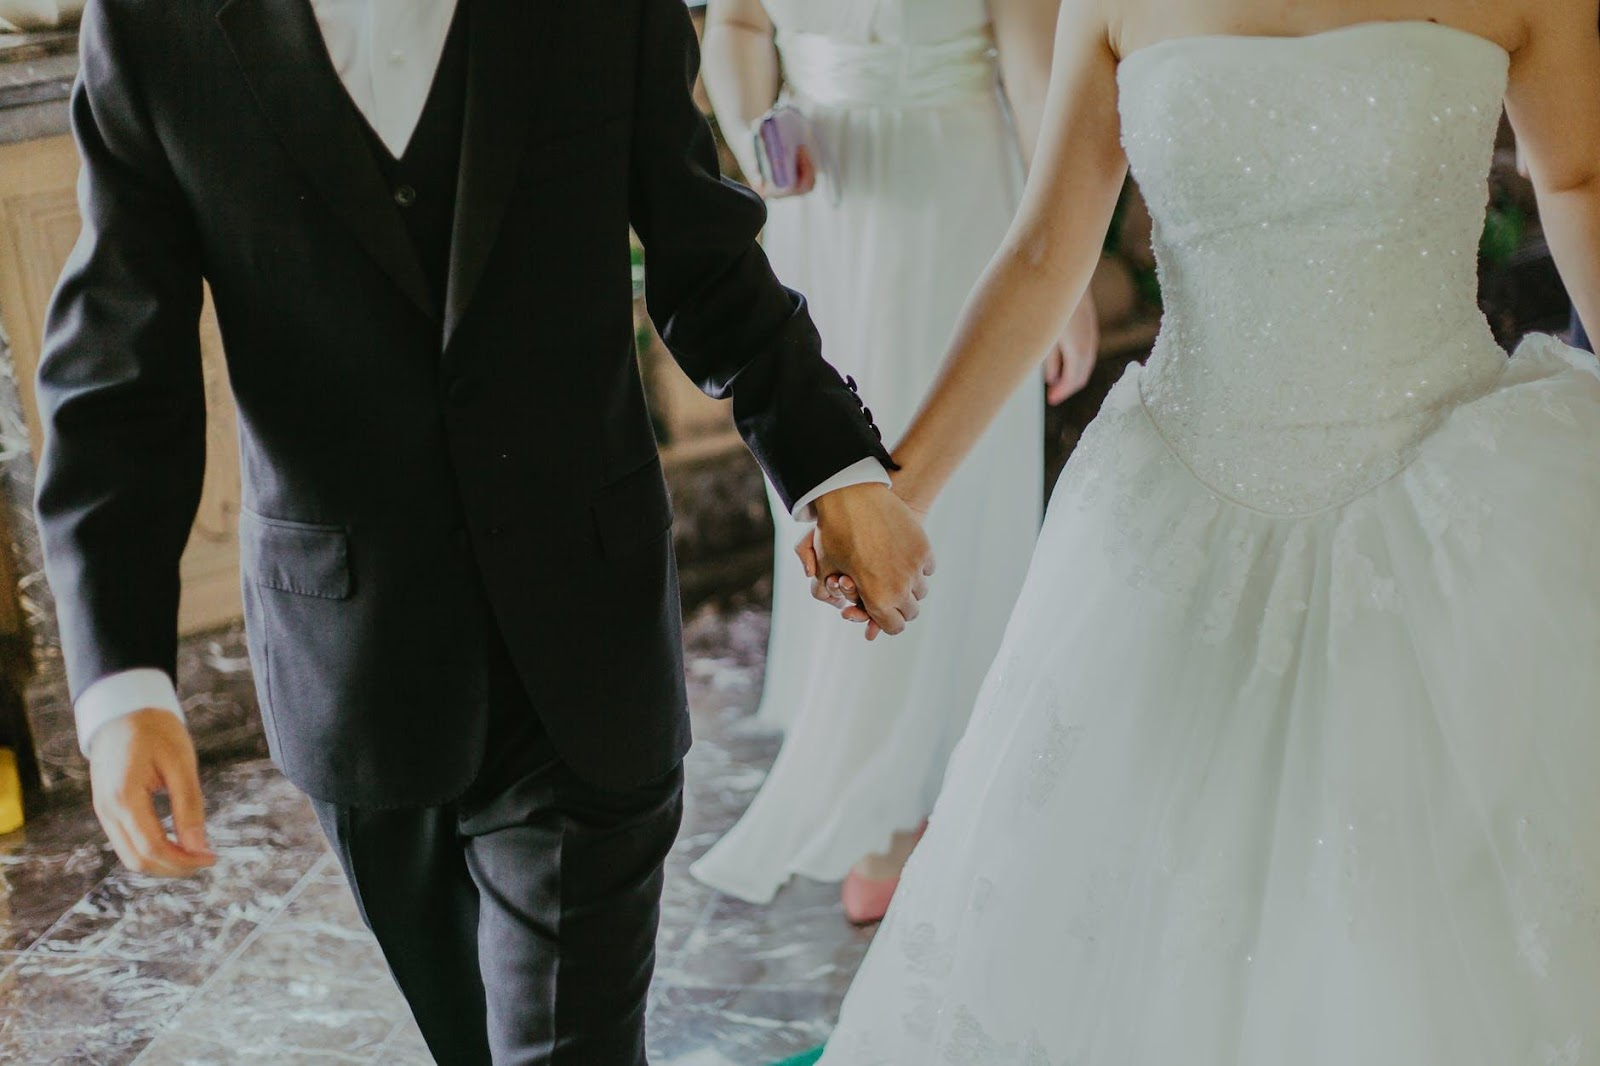 C:\Users\Cristhian\Documents\Escritura\Article Writing\Quality Guest Blogs\68155-0473UB - Eharmony and Match Are Still The Best Dating Sites to Find Marriage\pexels-photo-1043902.jpeg